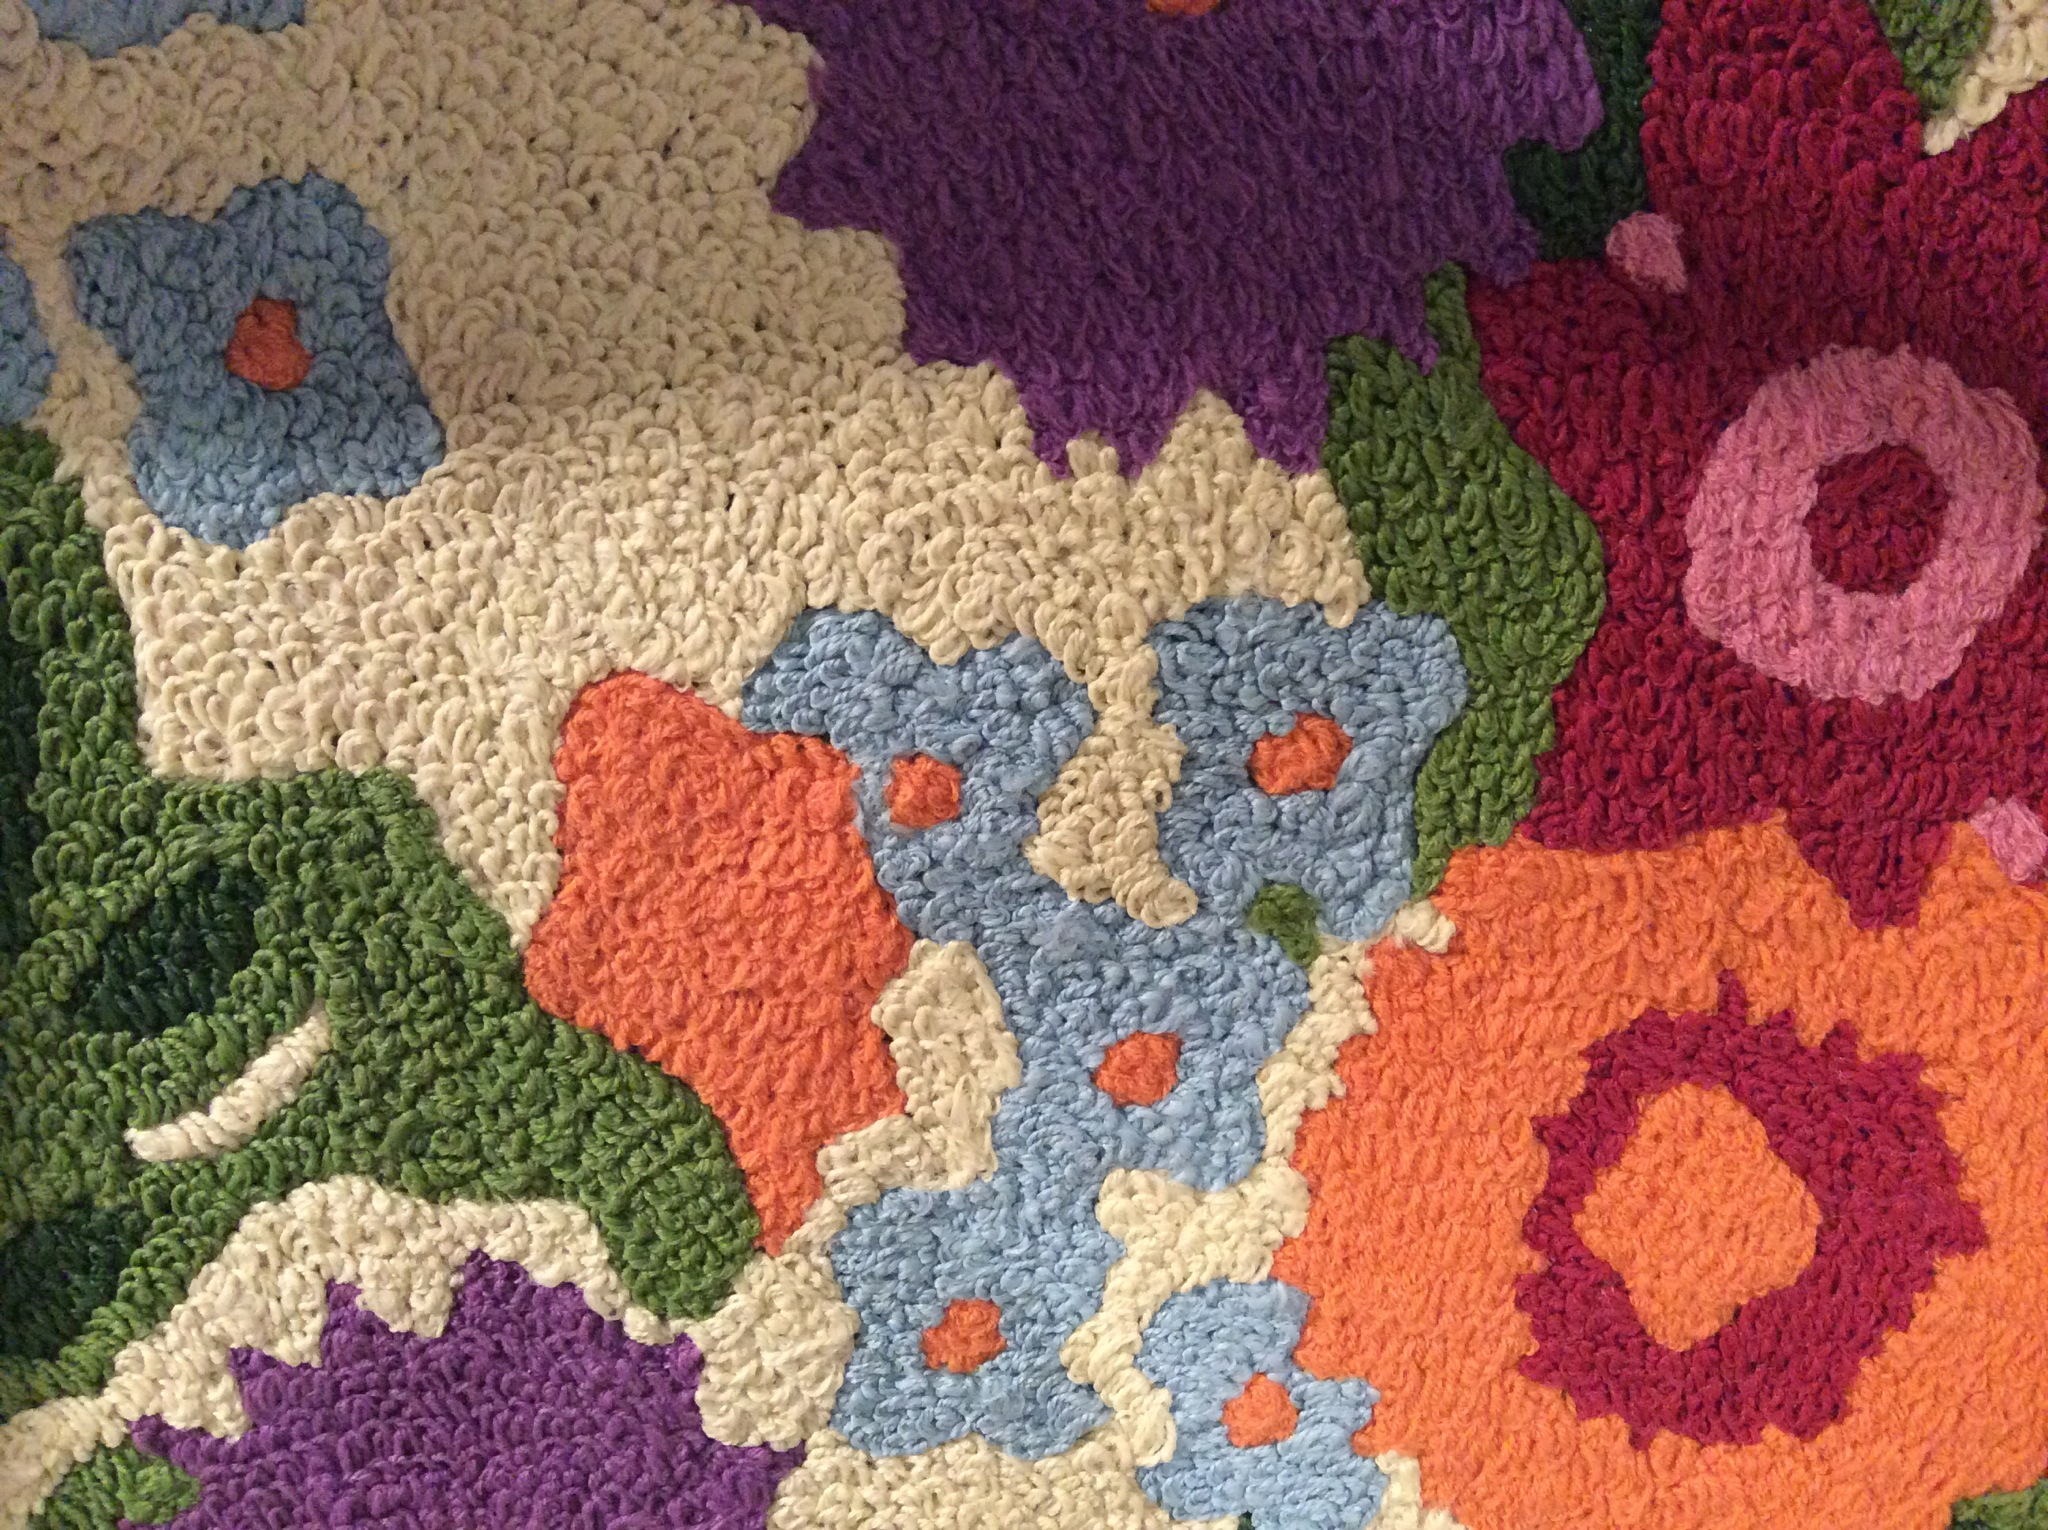 JELLYBEAN Rugs New Designs In The Patio Collection, World Market Center